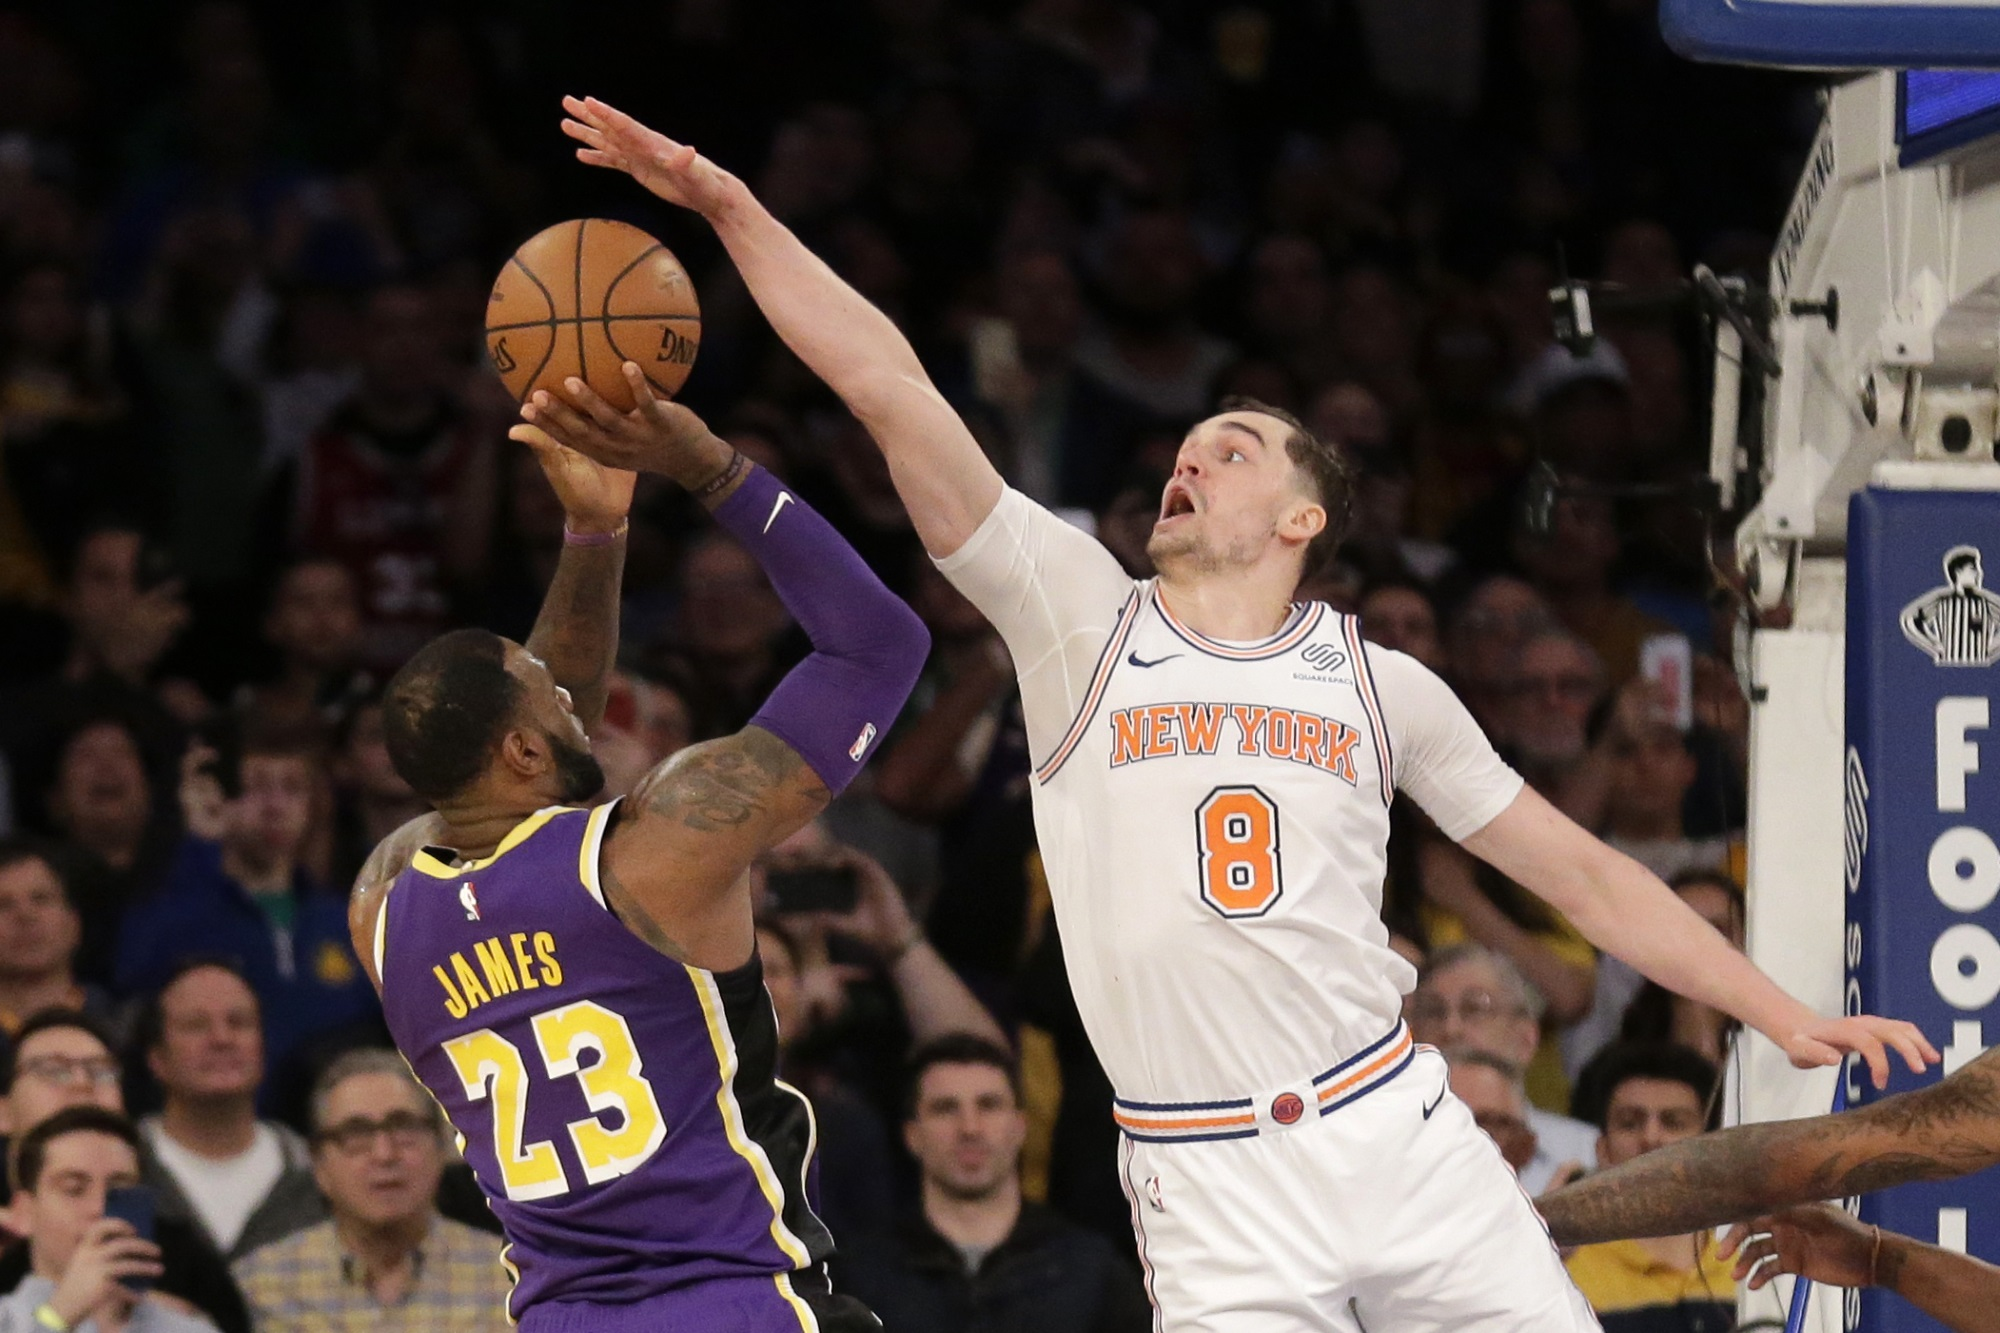 LeBron James and Mario Hezonja, Los Angeles Lakers vs New York Knicks at Madison Square Garden (Seth Wenig, AP Photo)